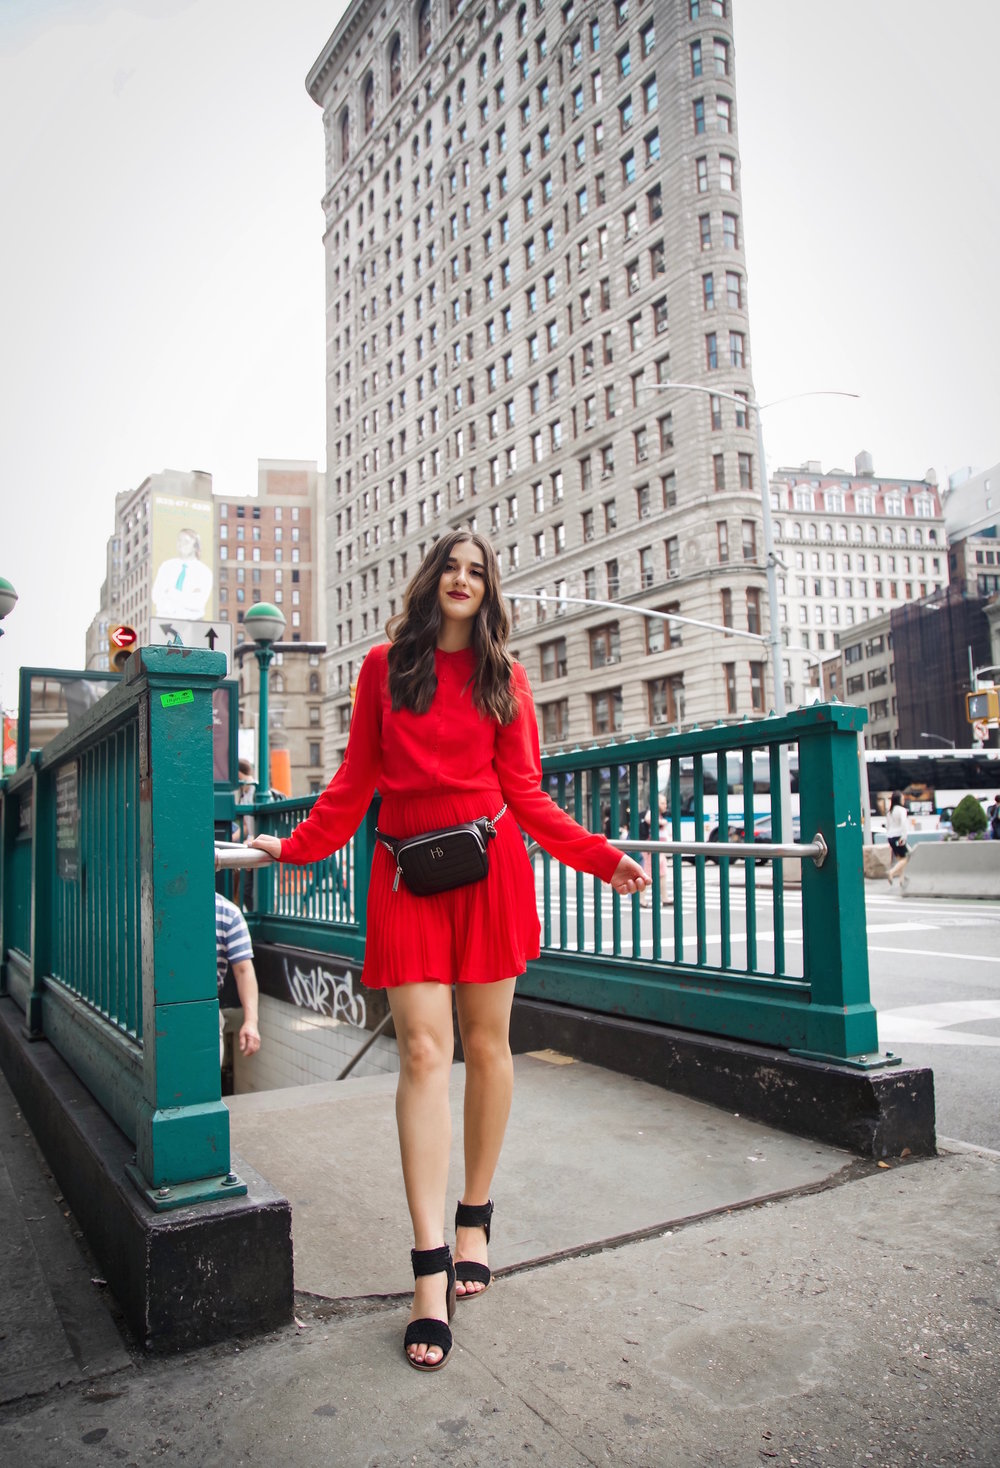 What Do Bloggers Do With All The Free Products They Receive Red Pleated Dress Black Belt Bag Esther Santer Fashion Blog NYC Street Style Blogger Outfit OOTD Trendy ASOS Vince Camuto Braided Sandals Shoes Hair Girl Women Fanny Pack Summer Fall Shopping.jpg